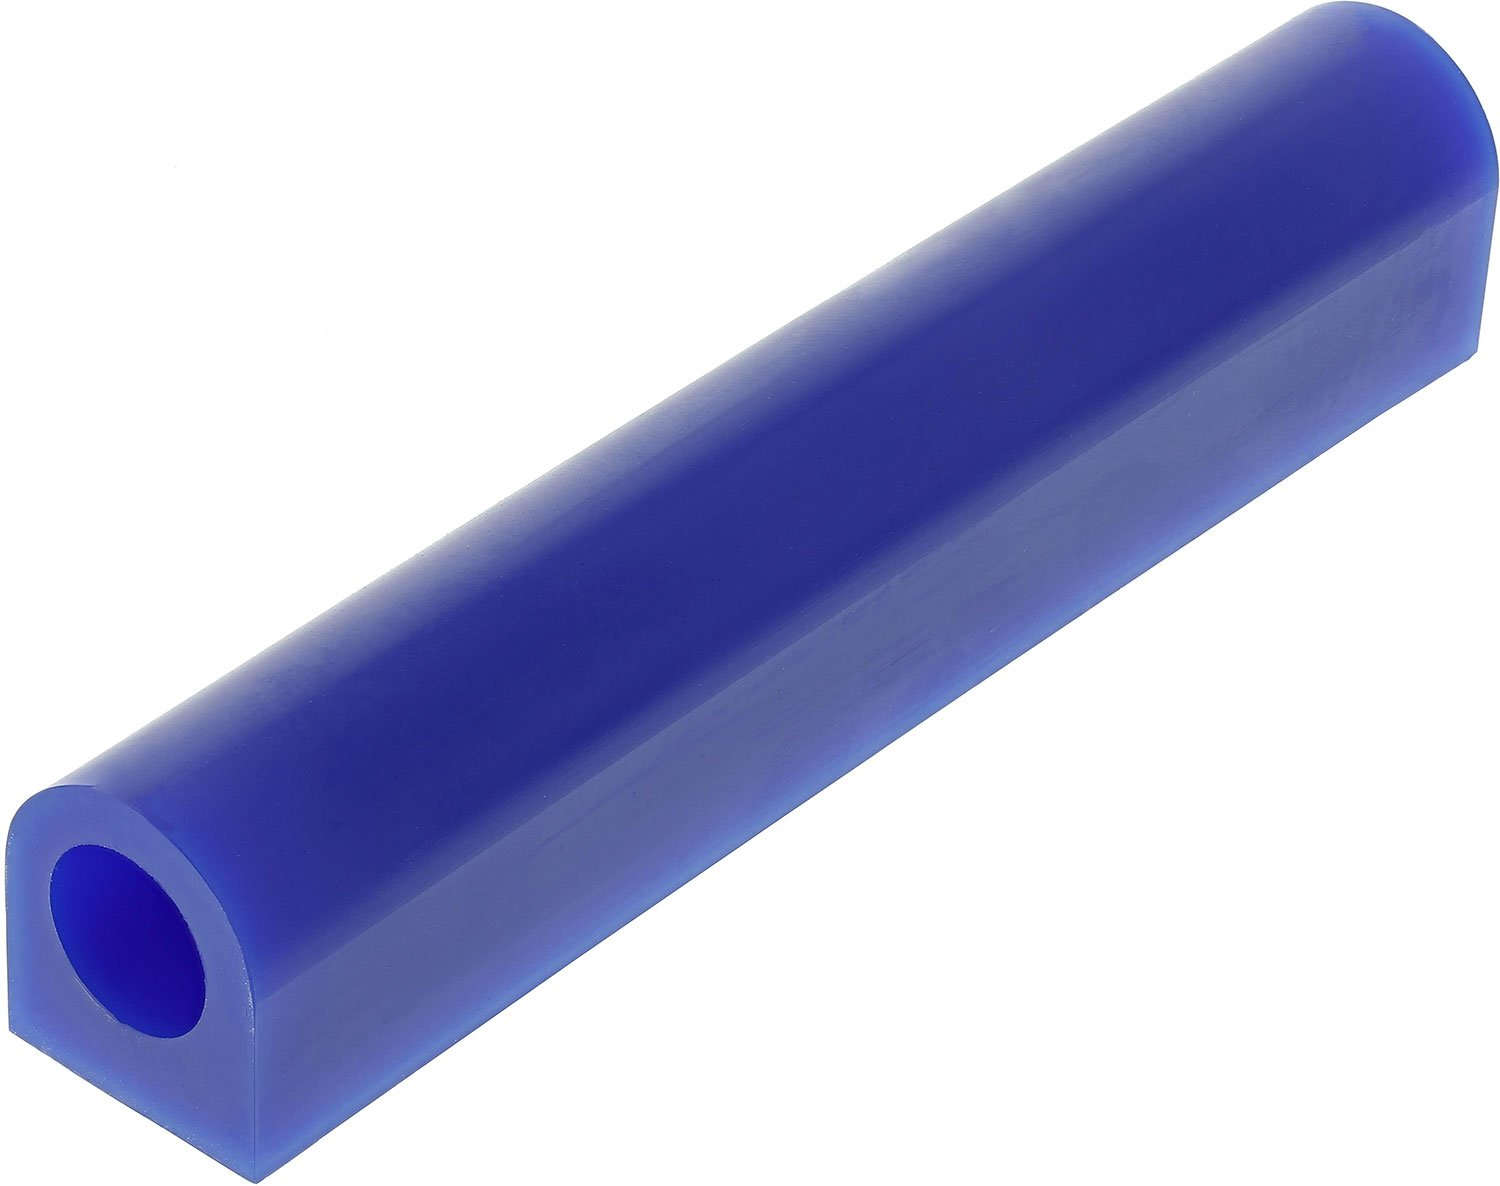 Carving Wax Ring Tube, Medium Flat Side Tube, Blue | WAX-321.20 EURO TOOL